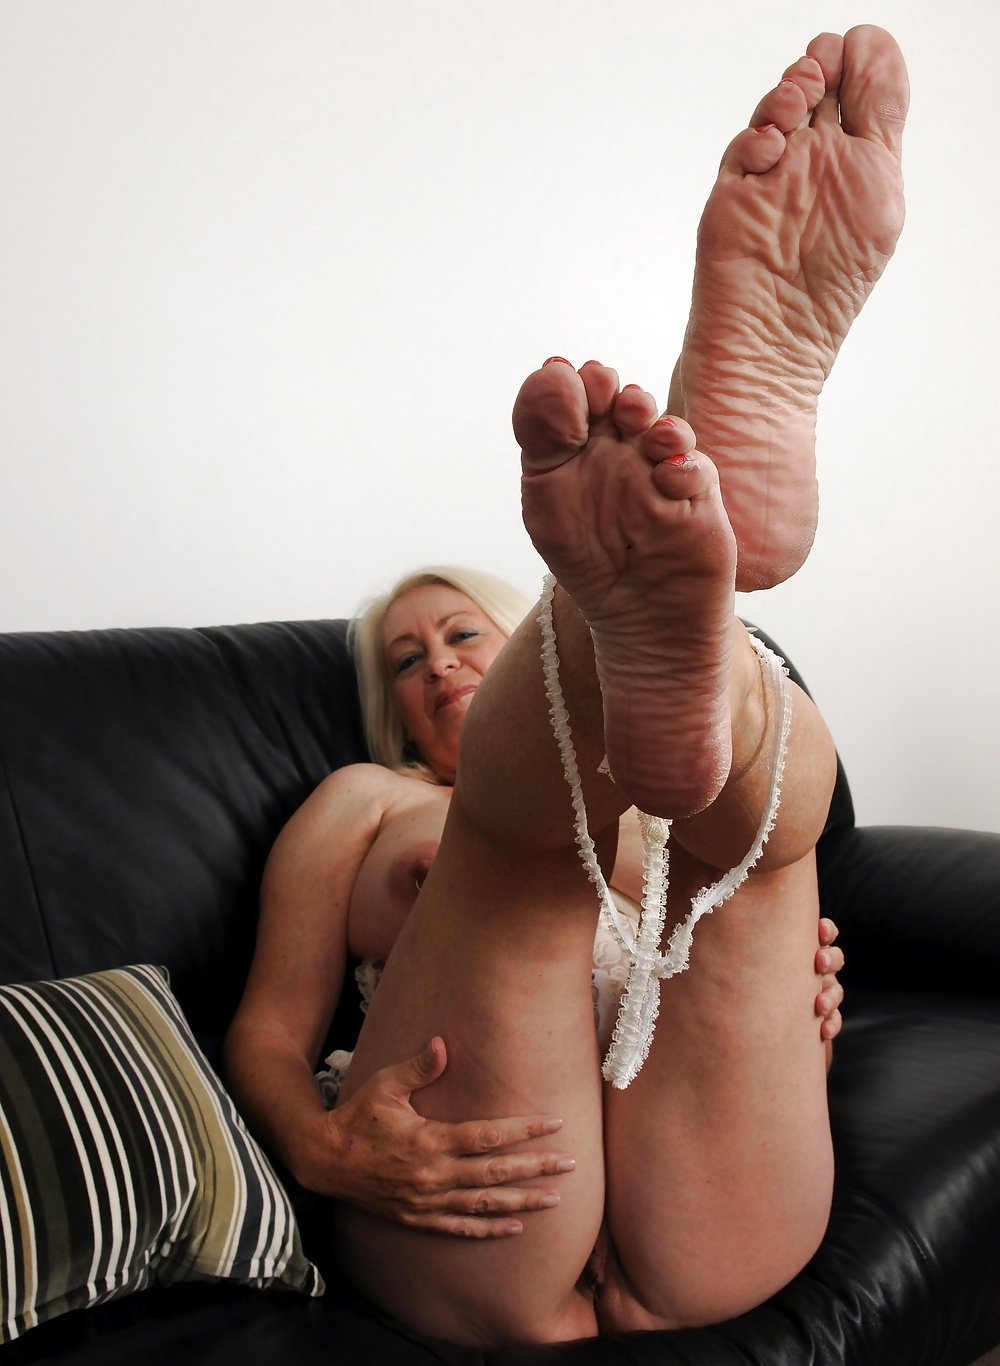 Sexy oiled up wrinkled soles